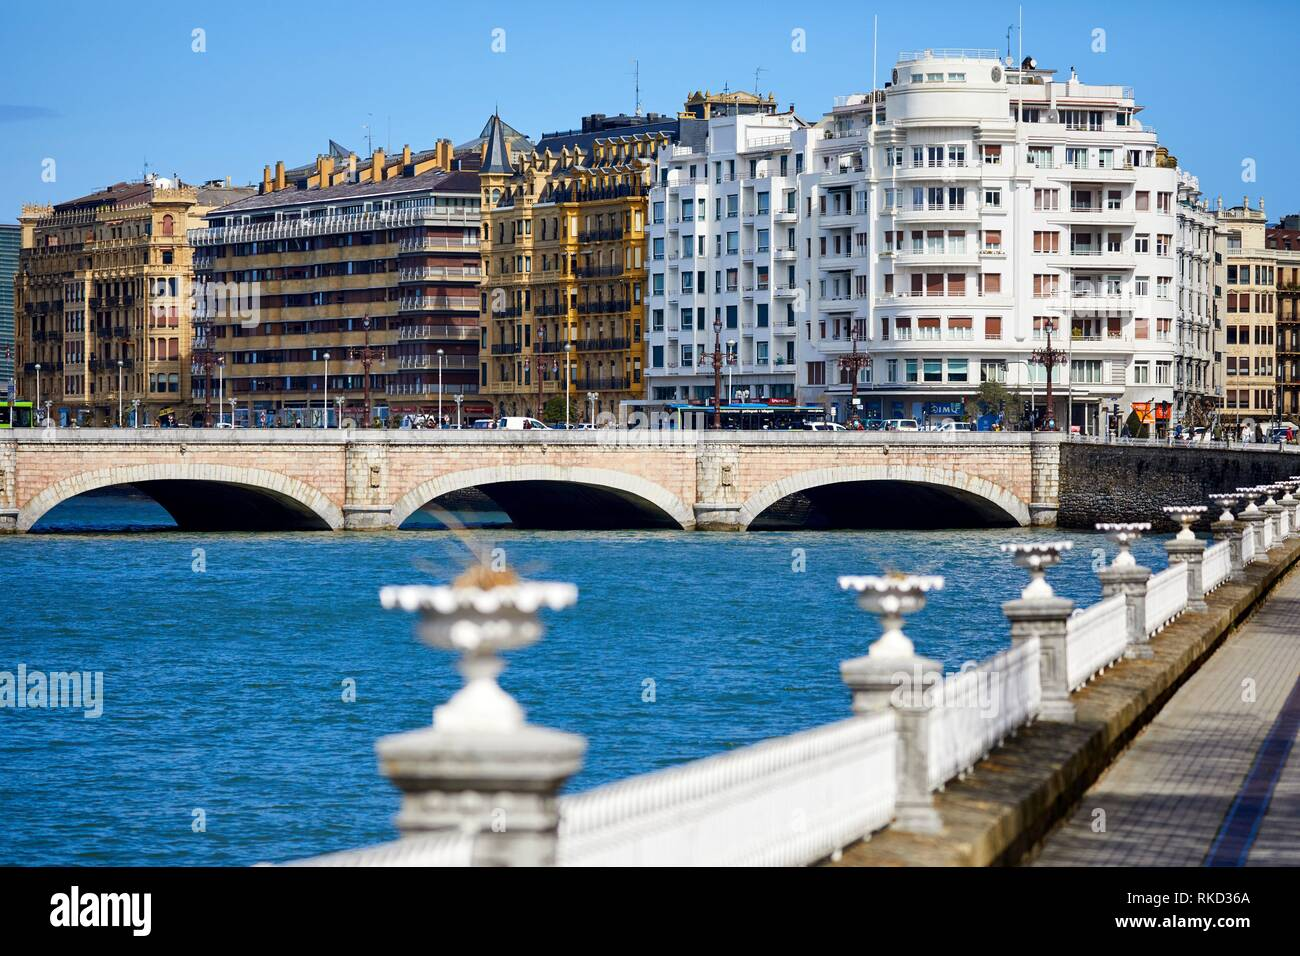 Urumea River, Santa Catalina bridge, Donostia, San Sebastian, Gipuzkoa, Basque Country, Spain, Europe - Stock Image